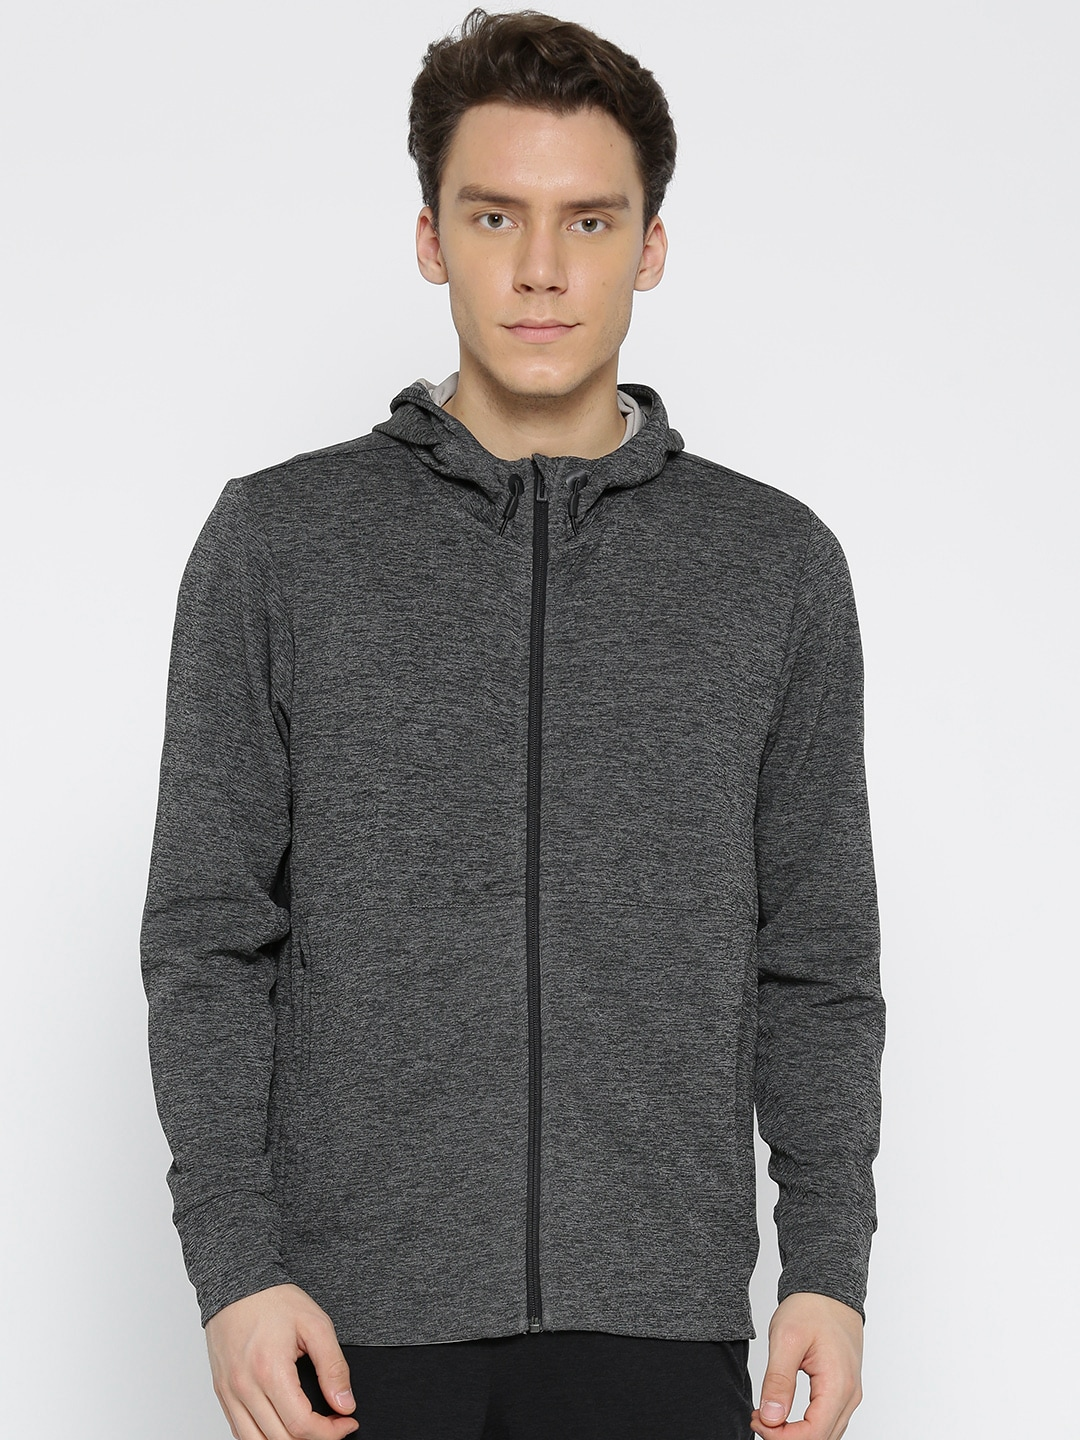 Buy Adidas WO FZ Climacool Charcoal Grey Solid Hooded Men's Sweatshirt At Best Price